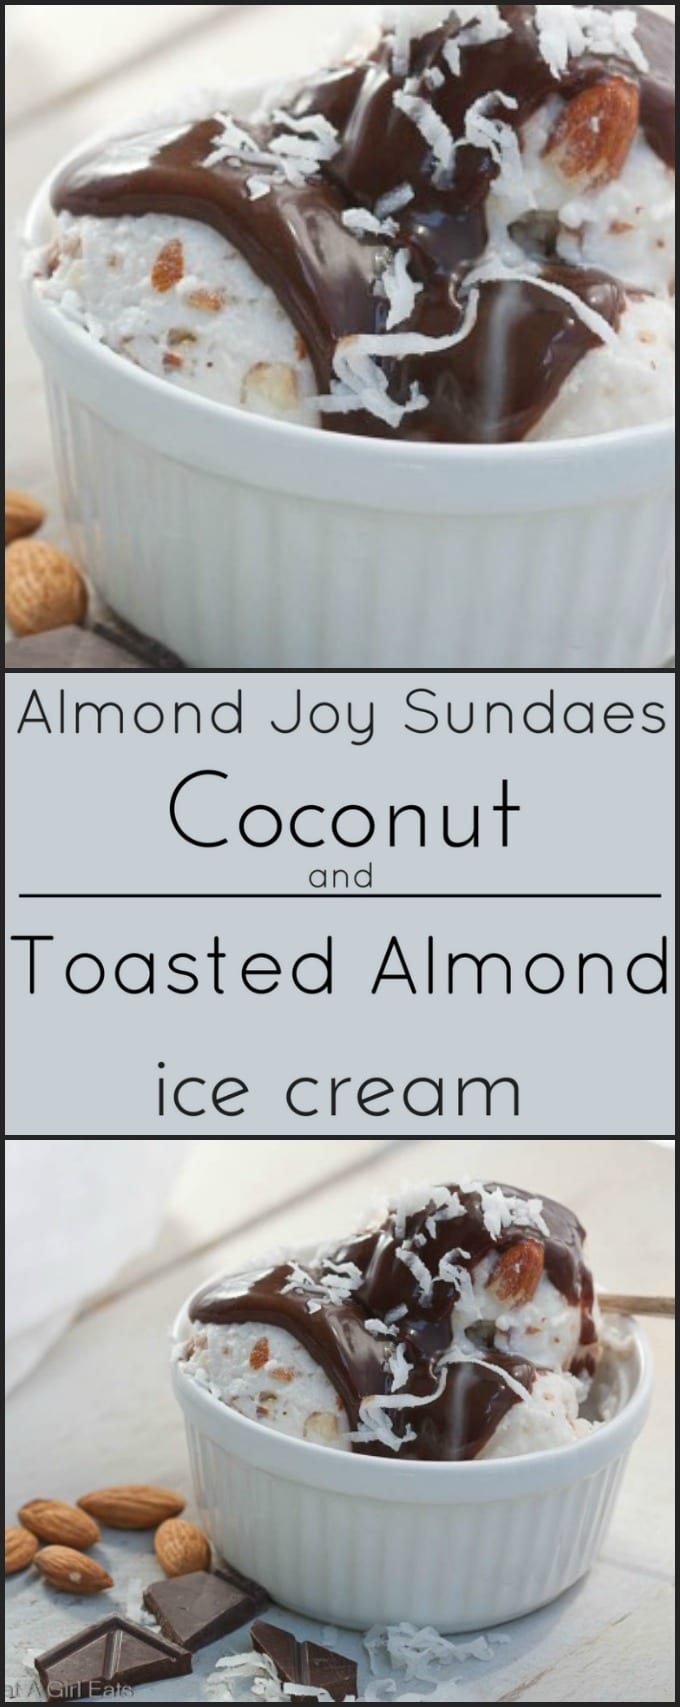 Coconut and Toasted Almond ice cream! Like an Almond Joy, but cold and creamy! Gluten free!